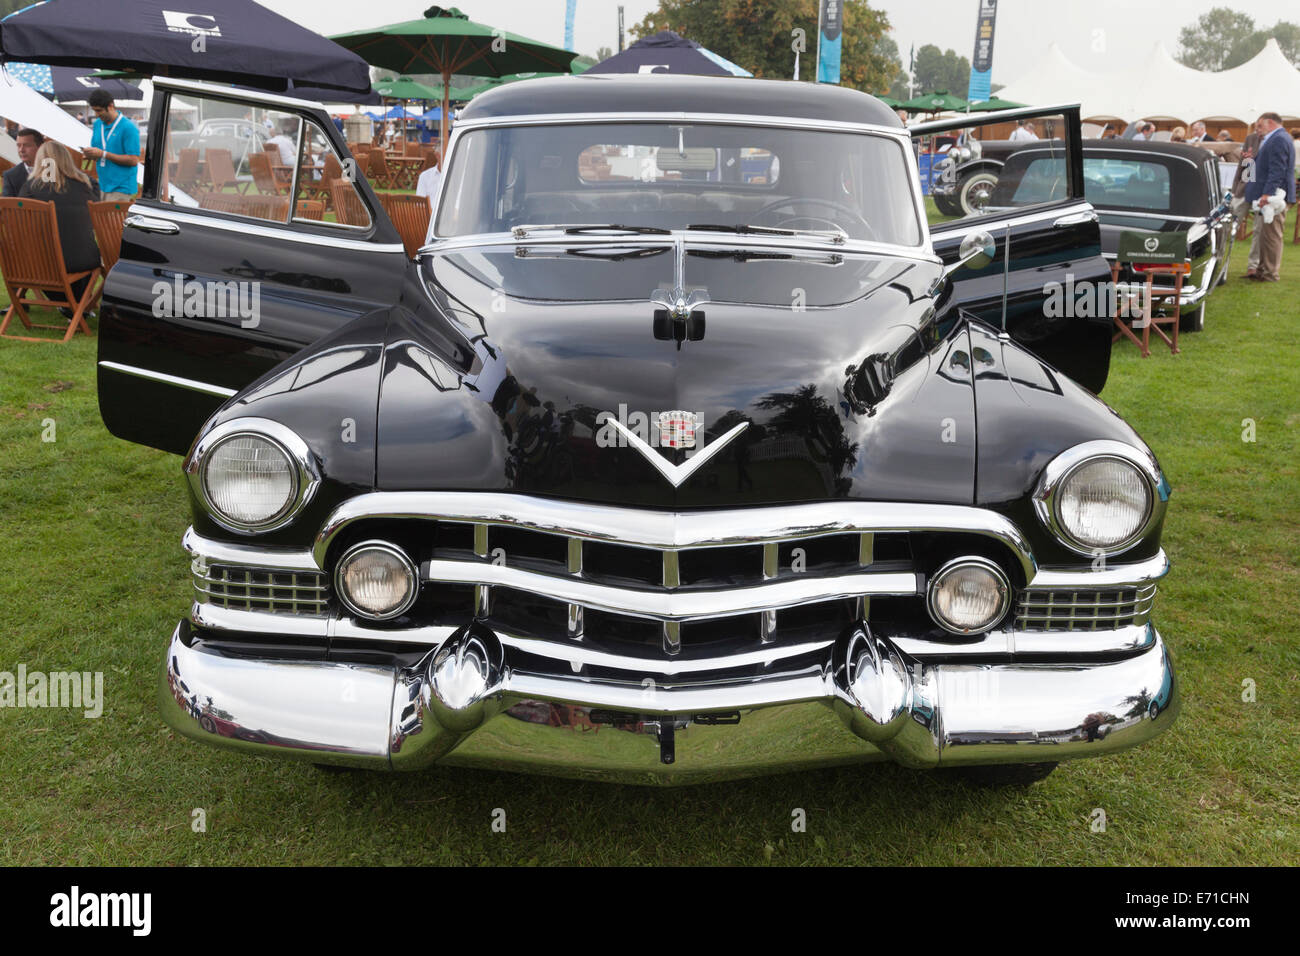 Cadillac Limousine Stock Photos Images 1951 Convertible For Sale The Which Served As Official State Eva And Juan Peron